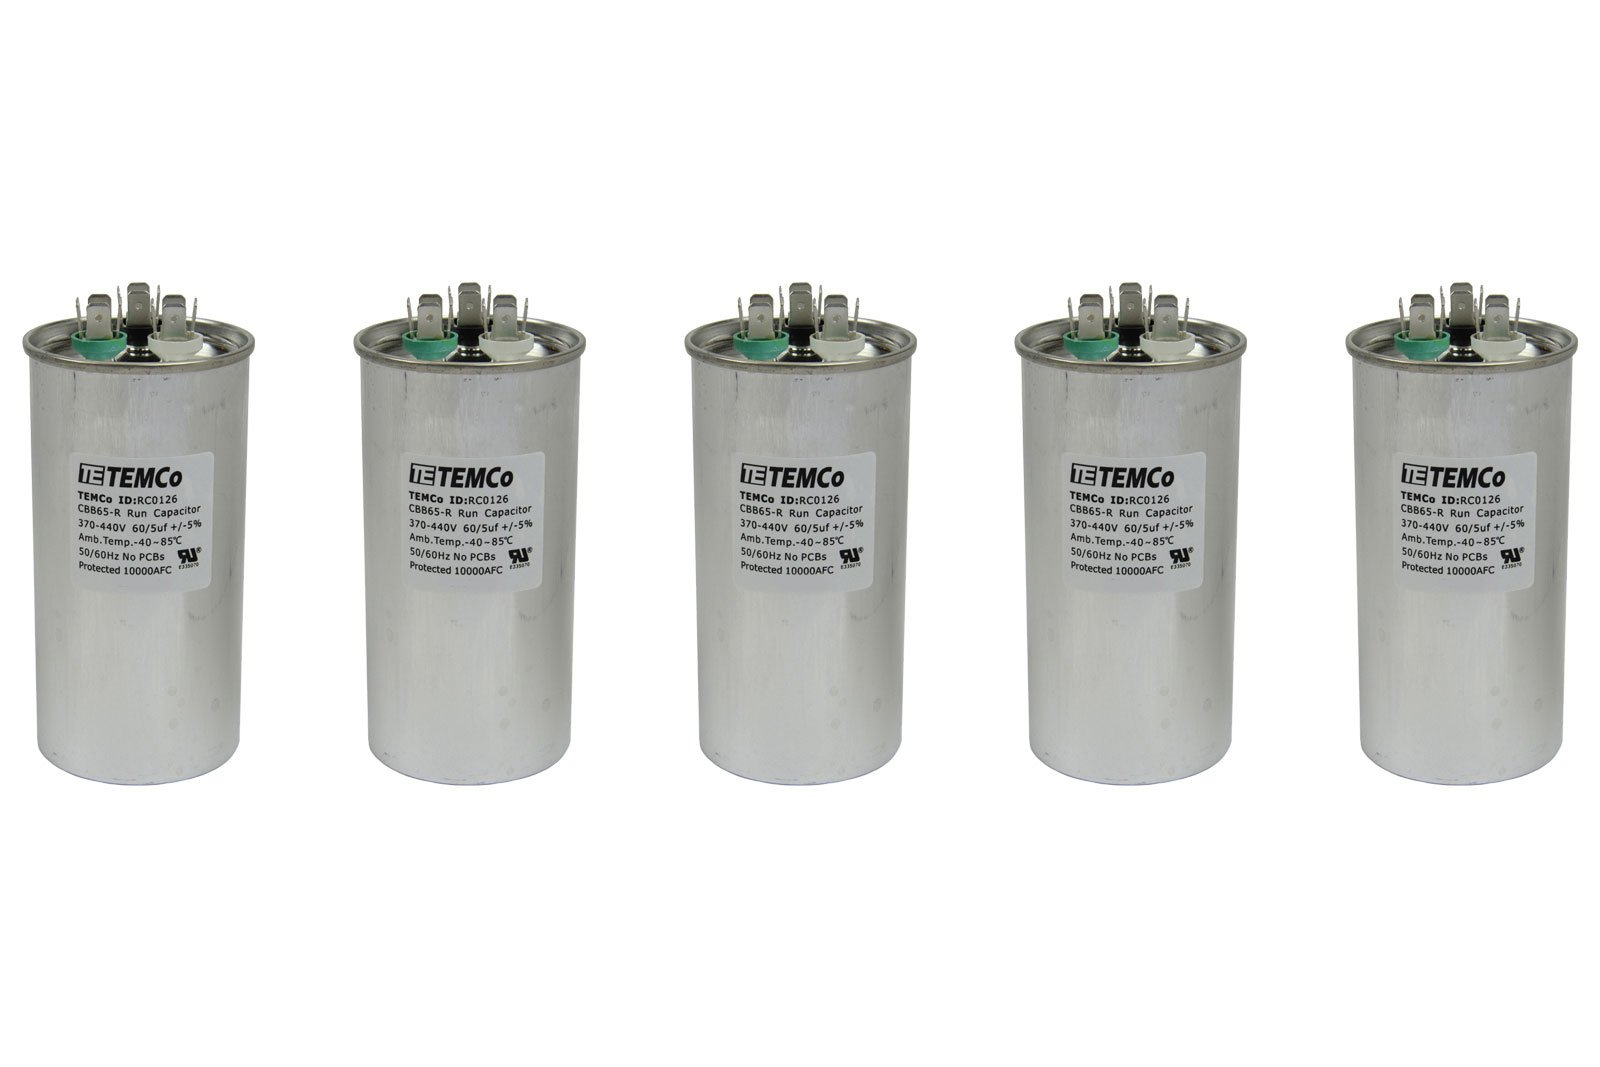 TEMCo 5 LOT Dual Run Capacitor RC0127-60/5 mfd 370 V 440 V VAC volt 60+5 uf AC Electric Motor HVAC